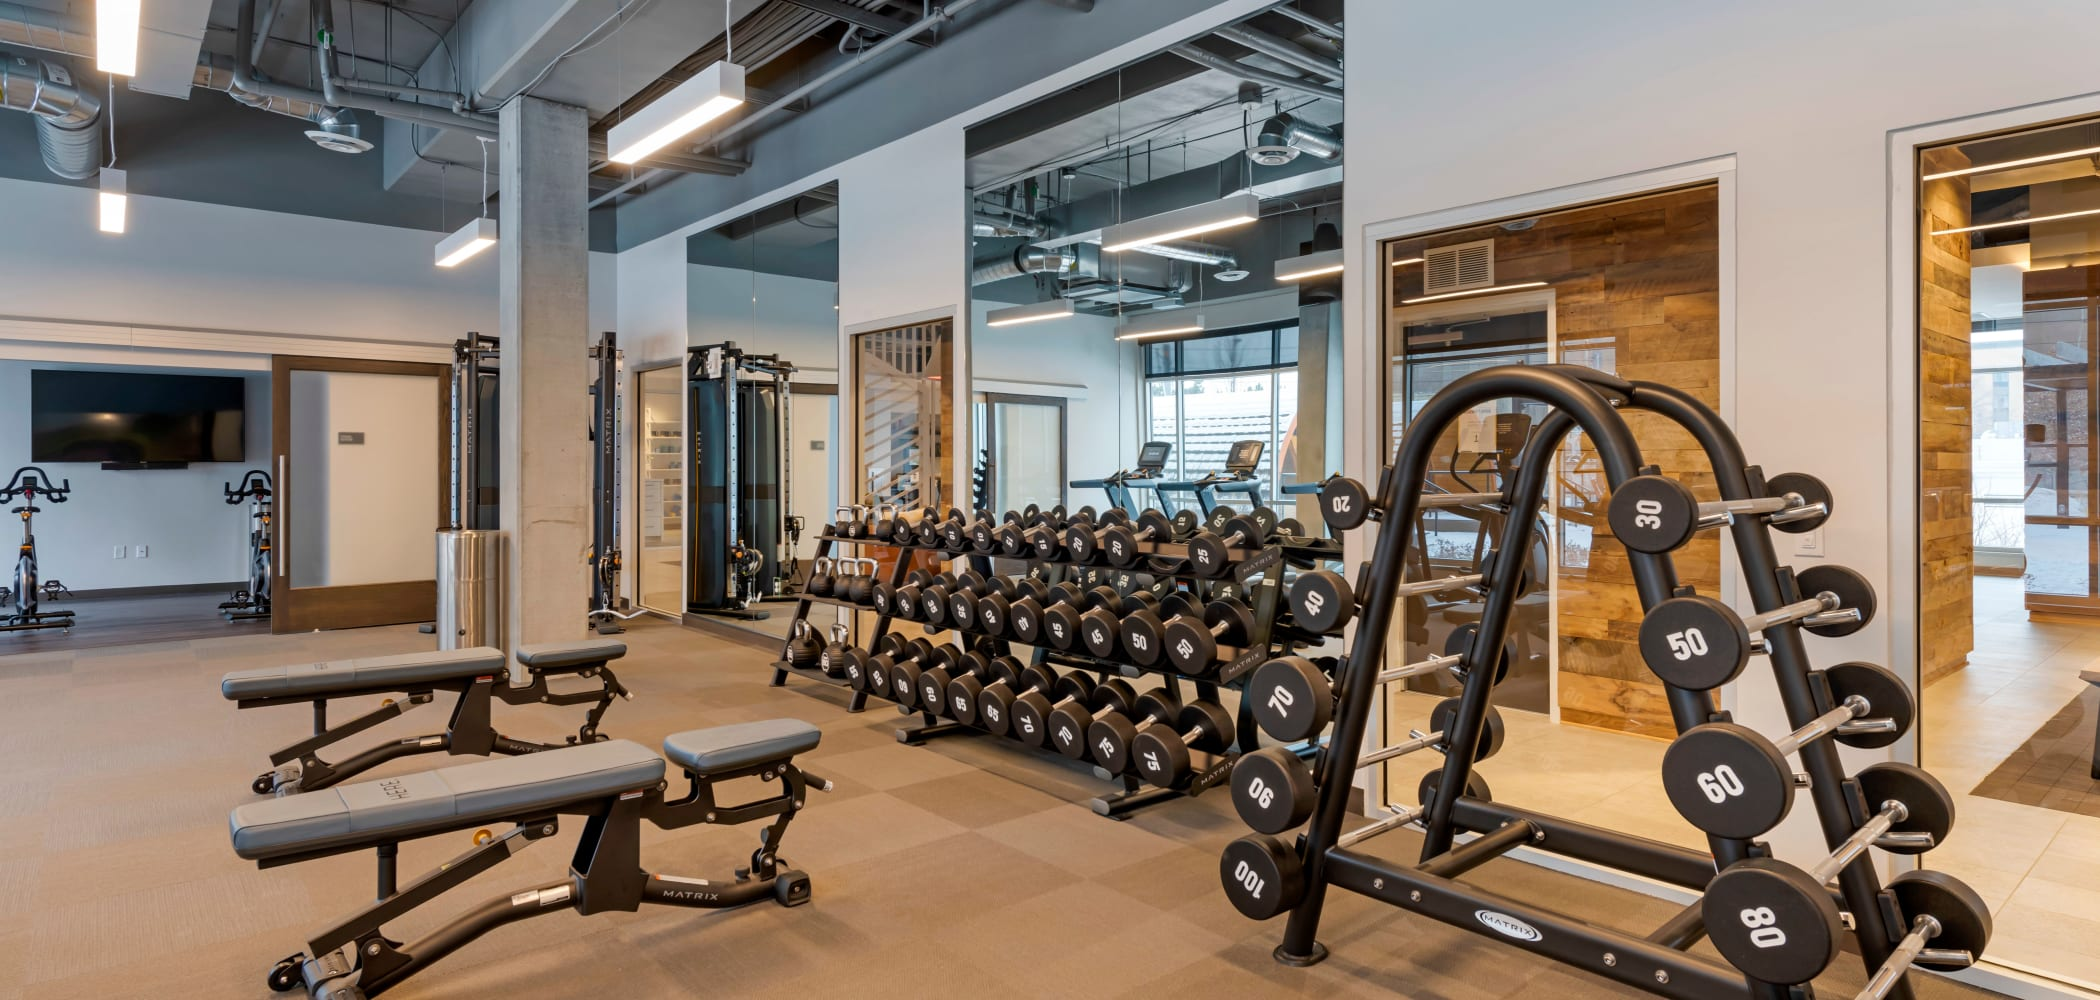 State of the art gym at HERE Minneapolis in Minneapolis, Minnesota